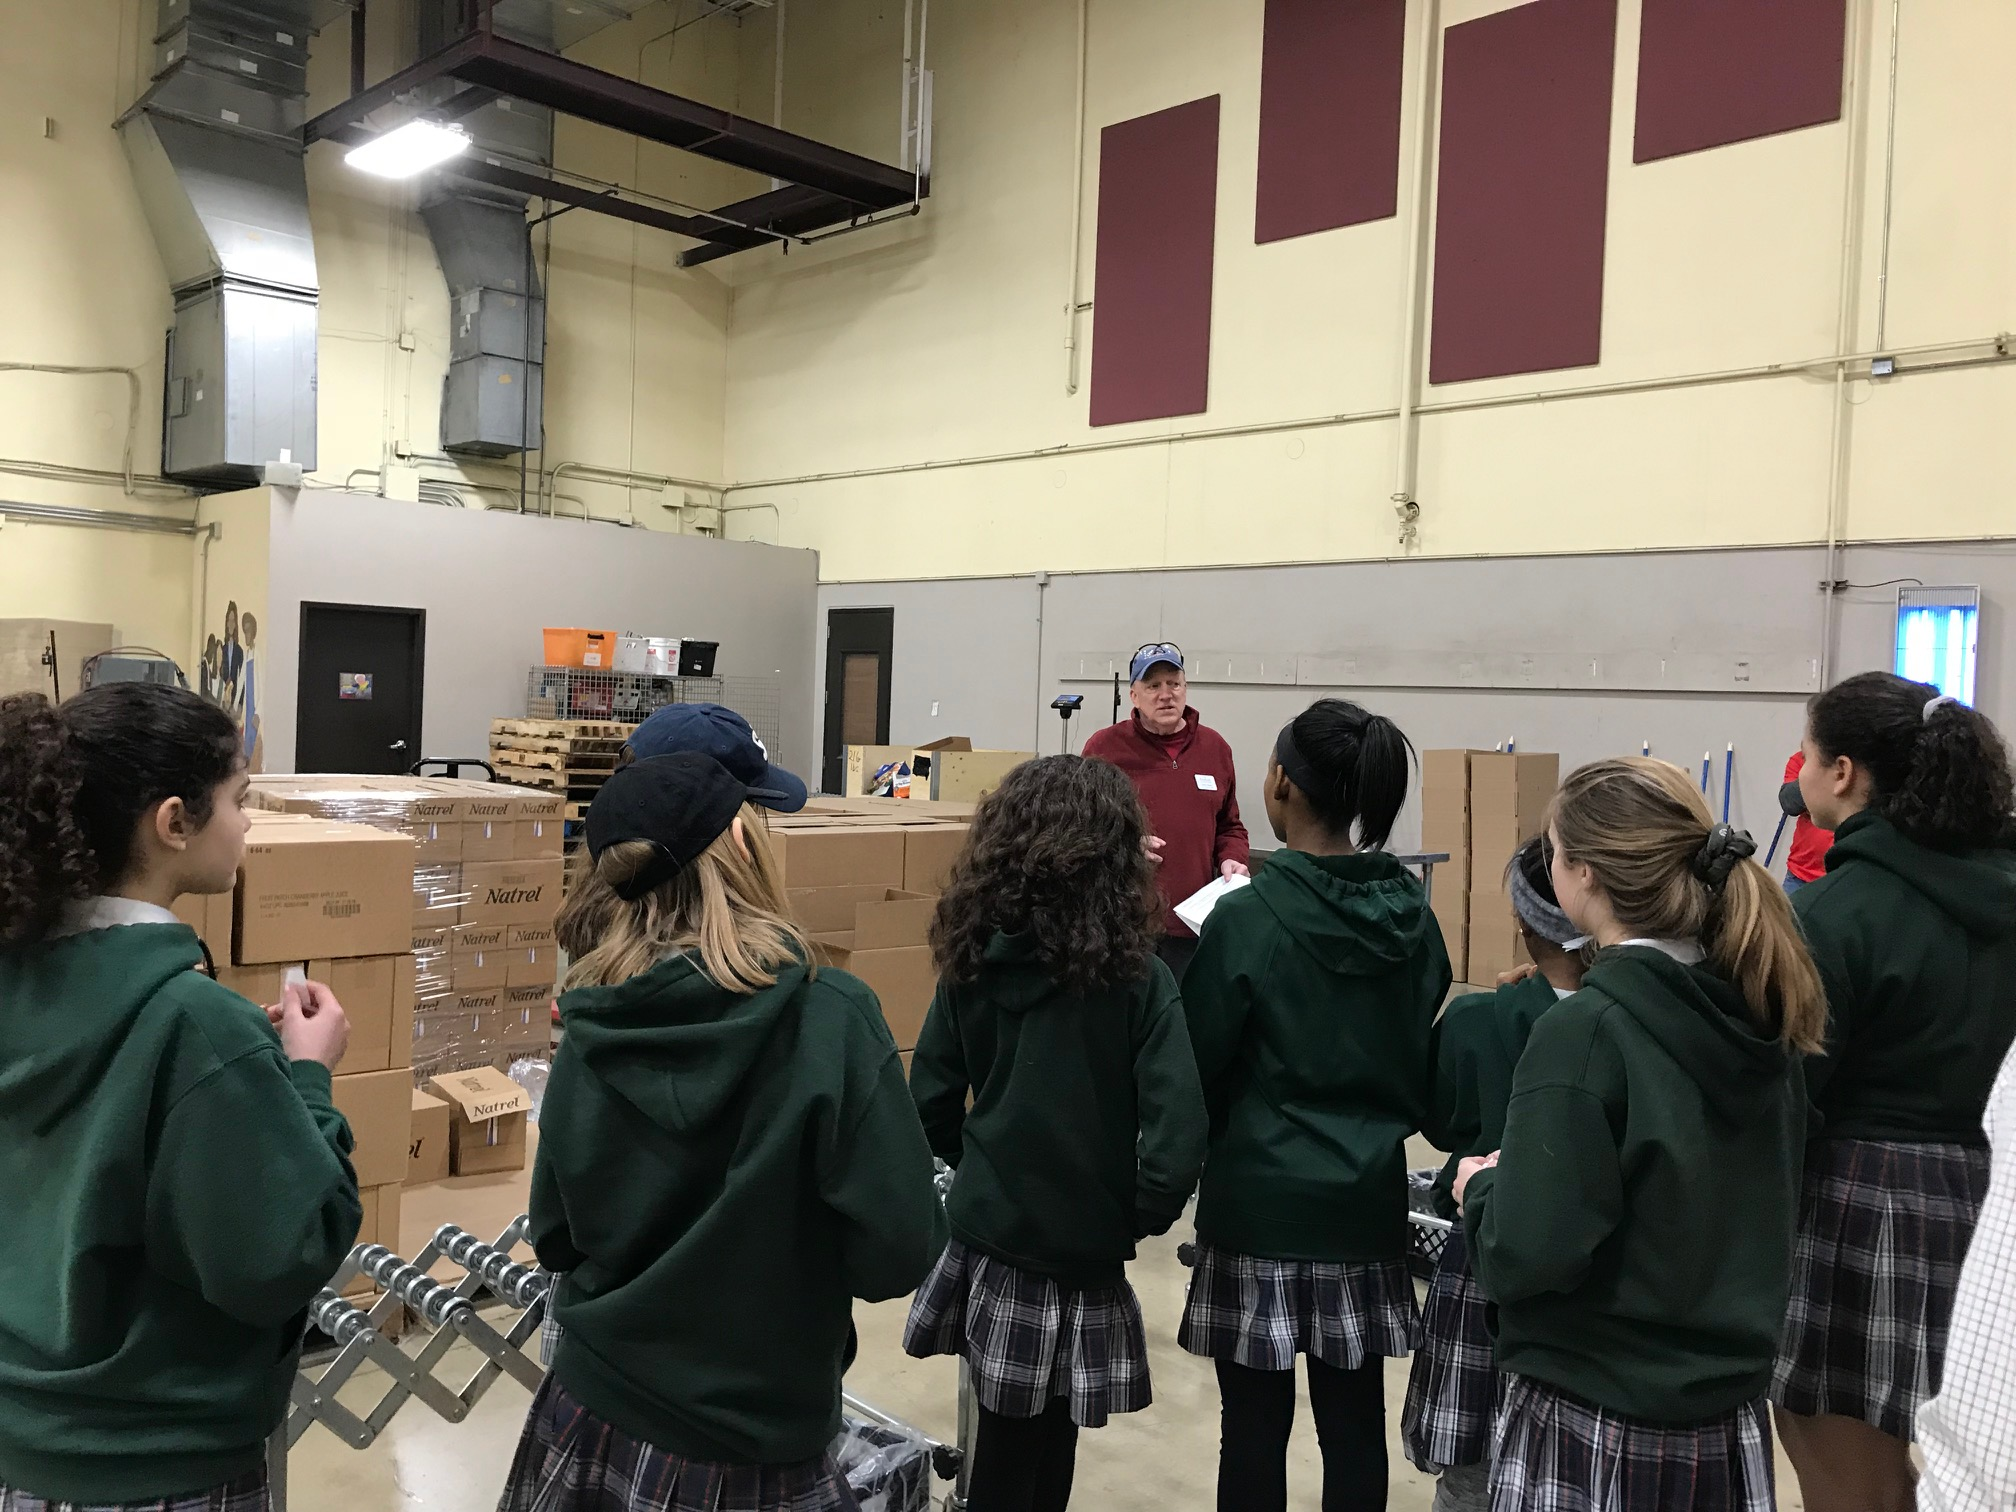 ST. Louis Area Food Bank 2/22